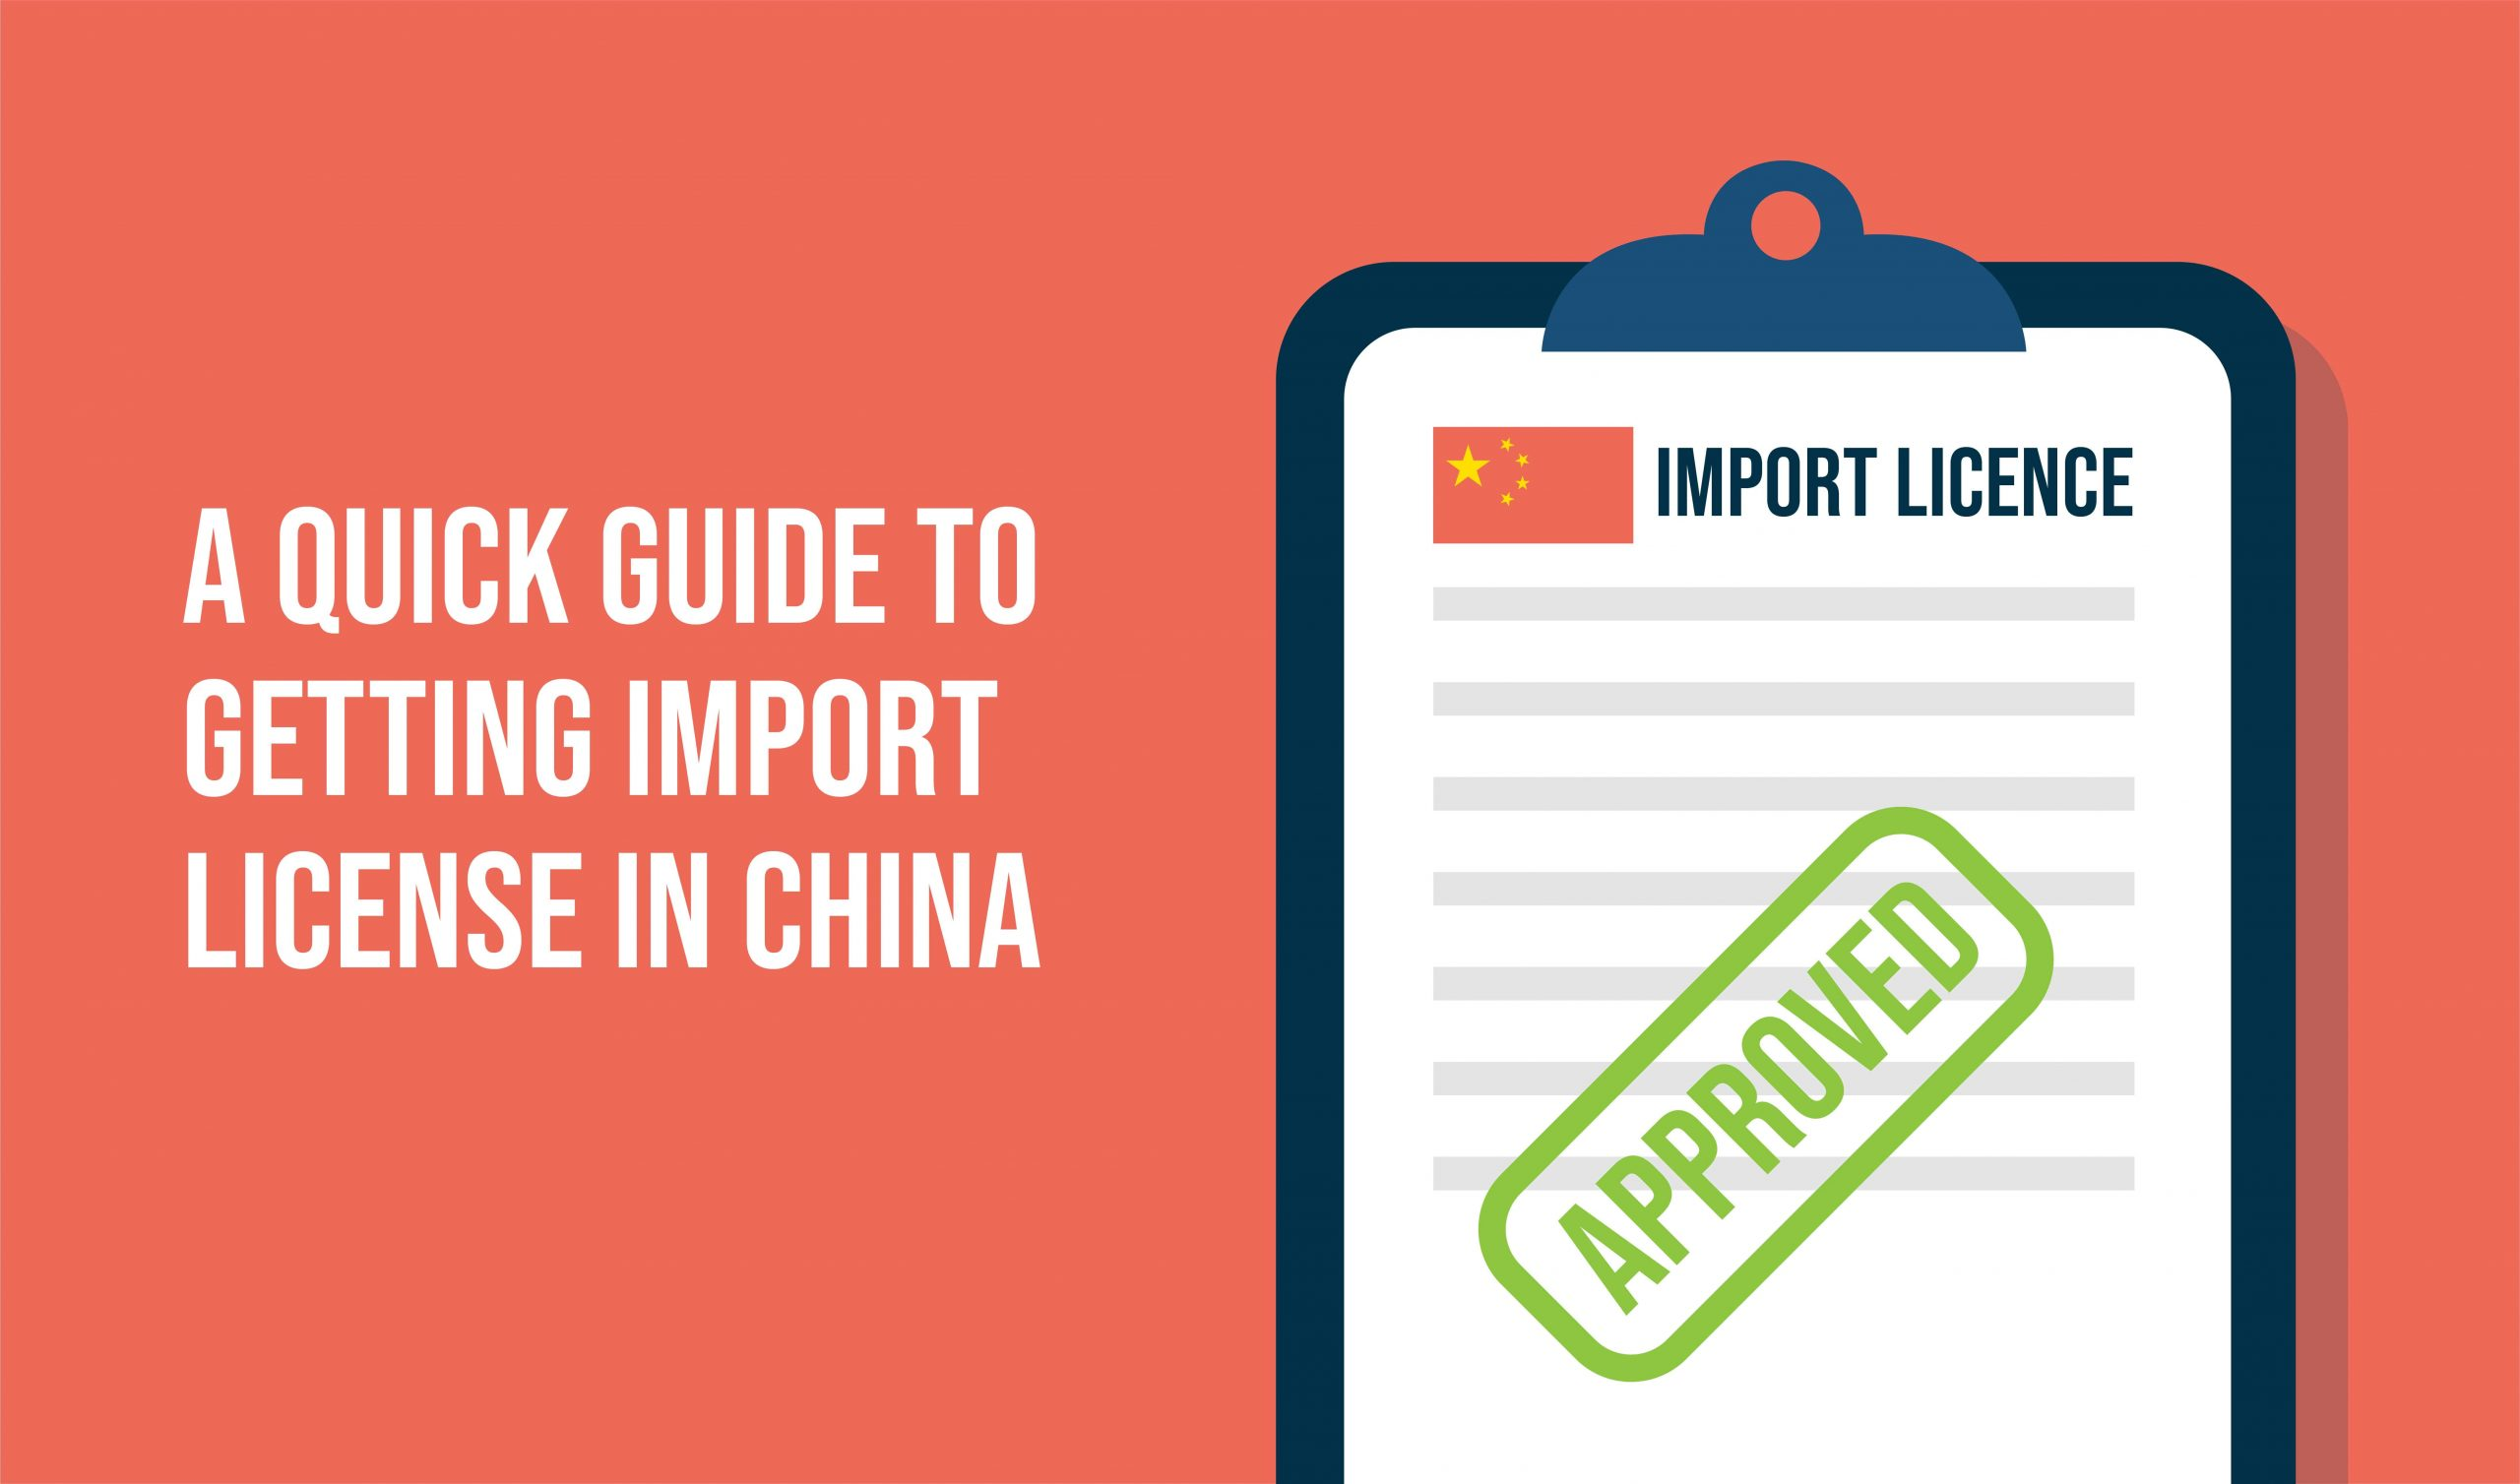 A Quick Guide to Getting Import License in China